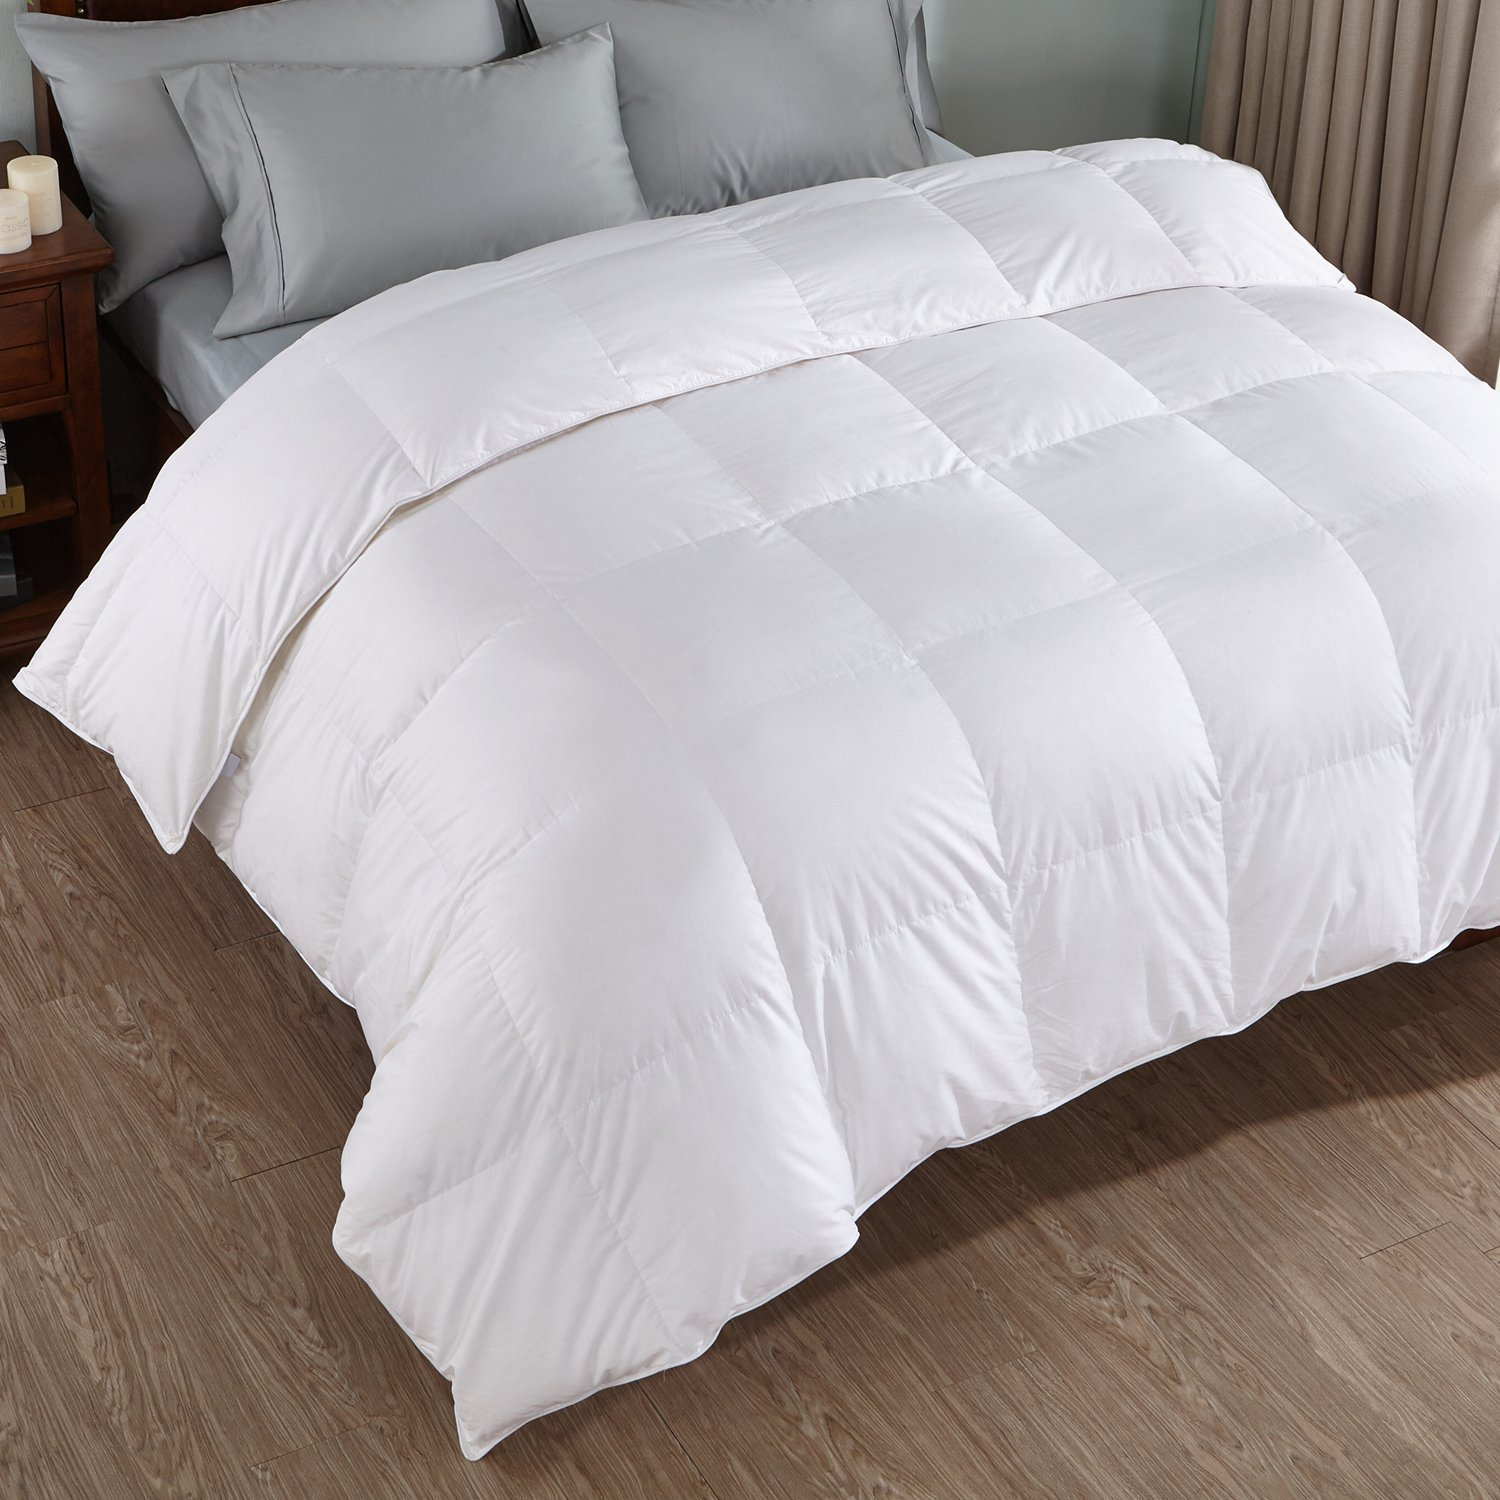 vknyfcy vs comforters amazing and comforter furniture duvet bedspreads here for go duvets feifan you